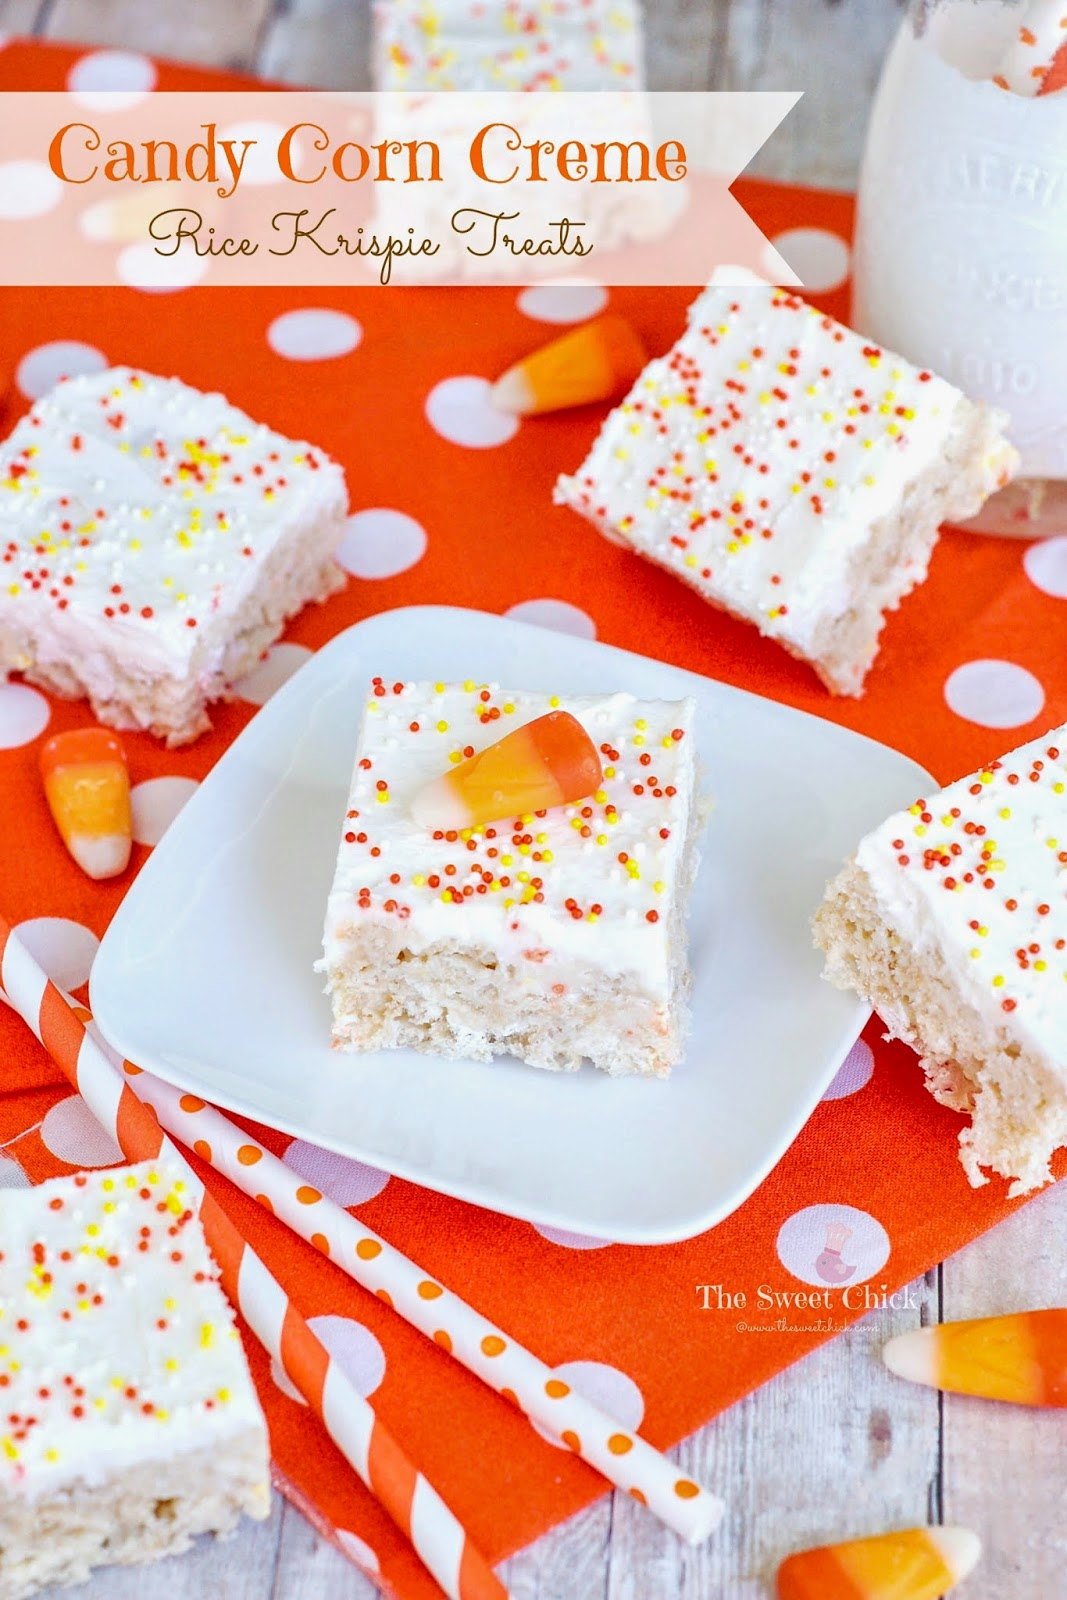 Candy Corn Creme Rice Krispie Treats by The Sweet Chick